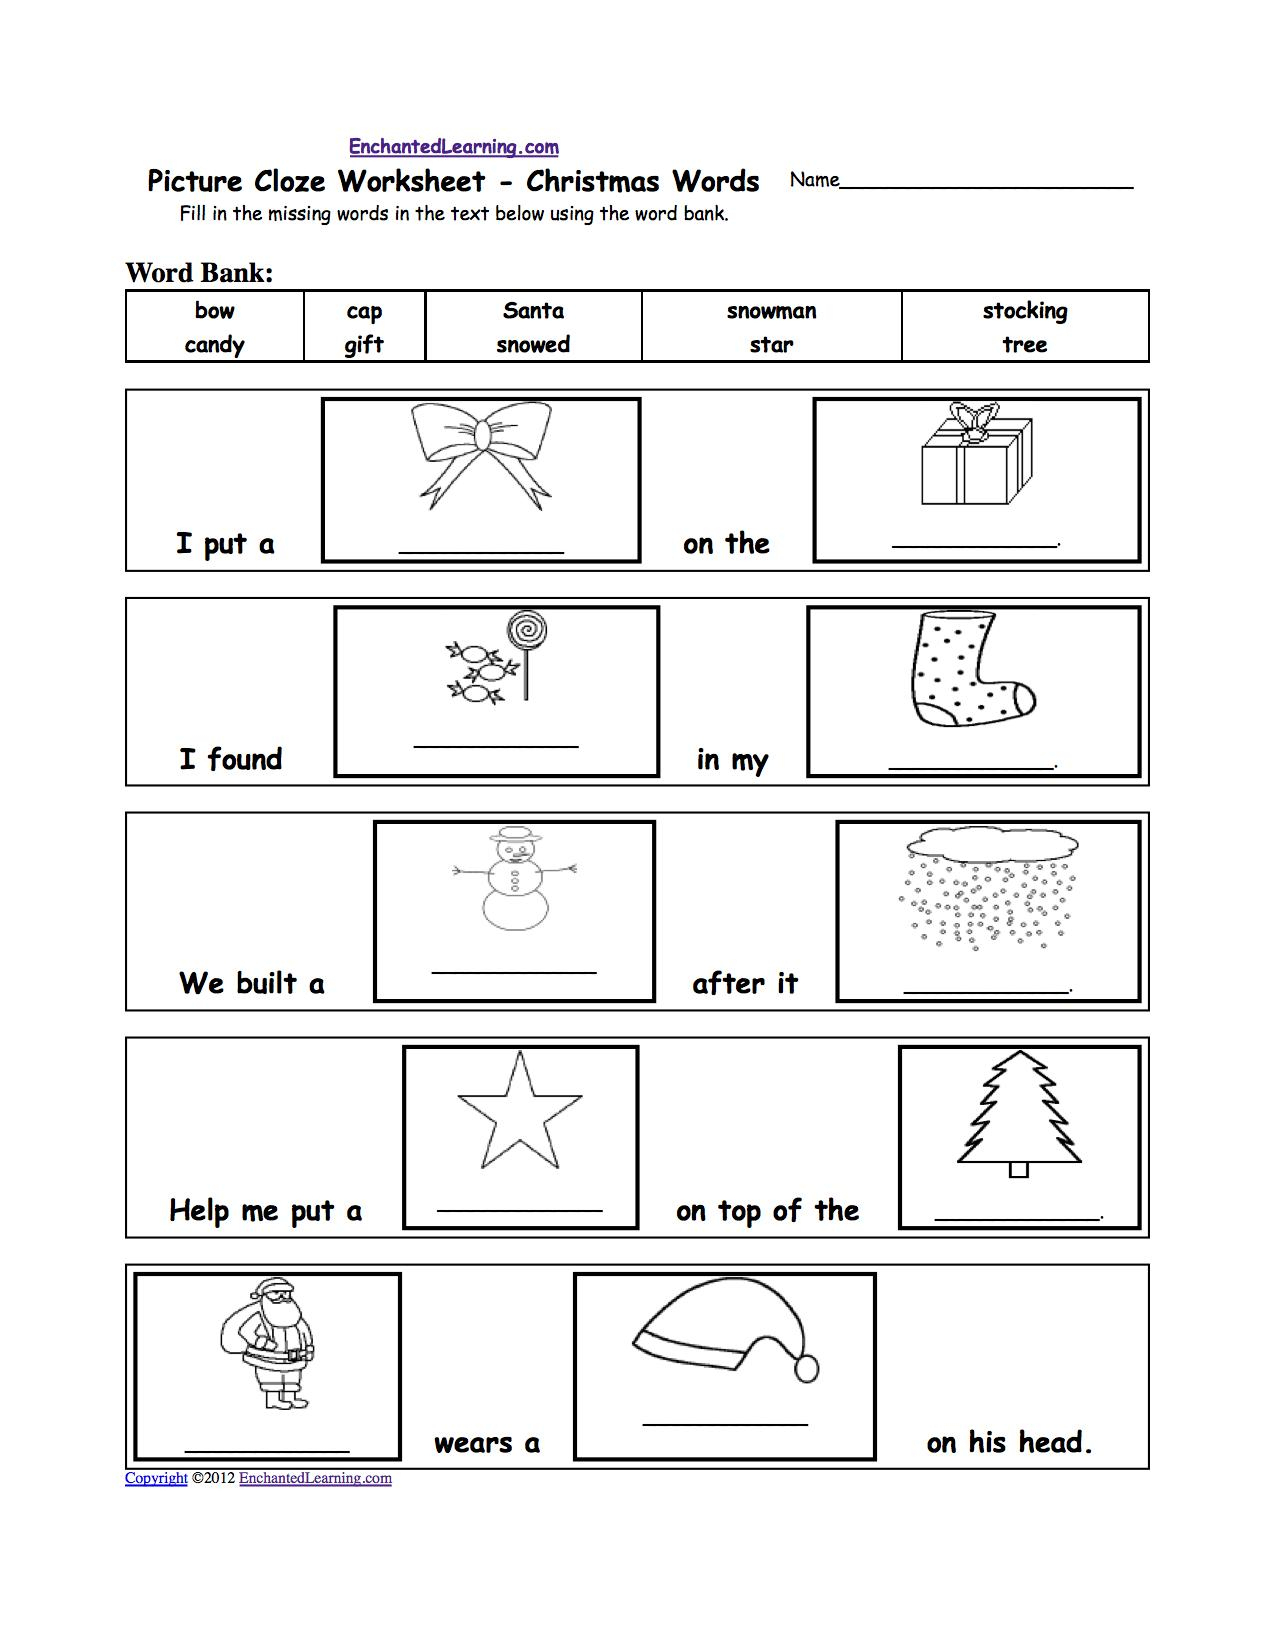 Puzzles For 4 Year Olds Printable Objects Visual Printable - Printable Puzzles For 4 Year Olds